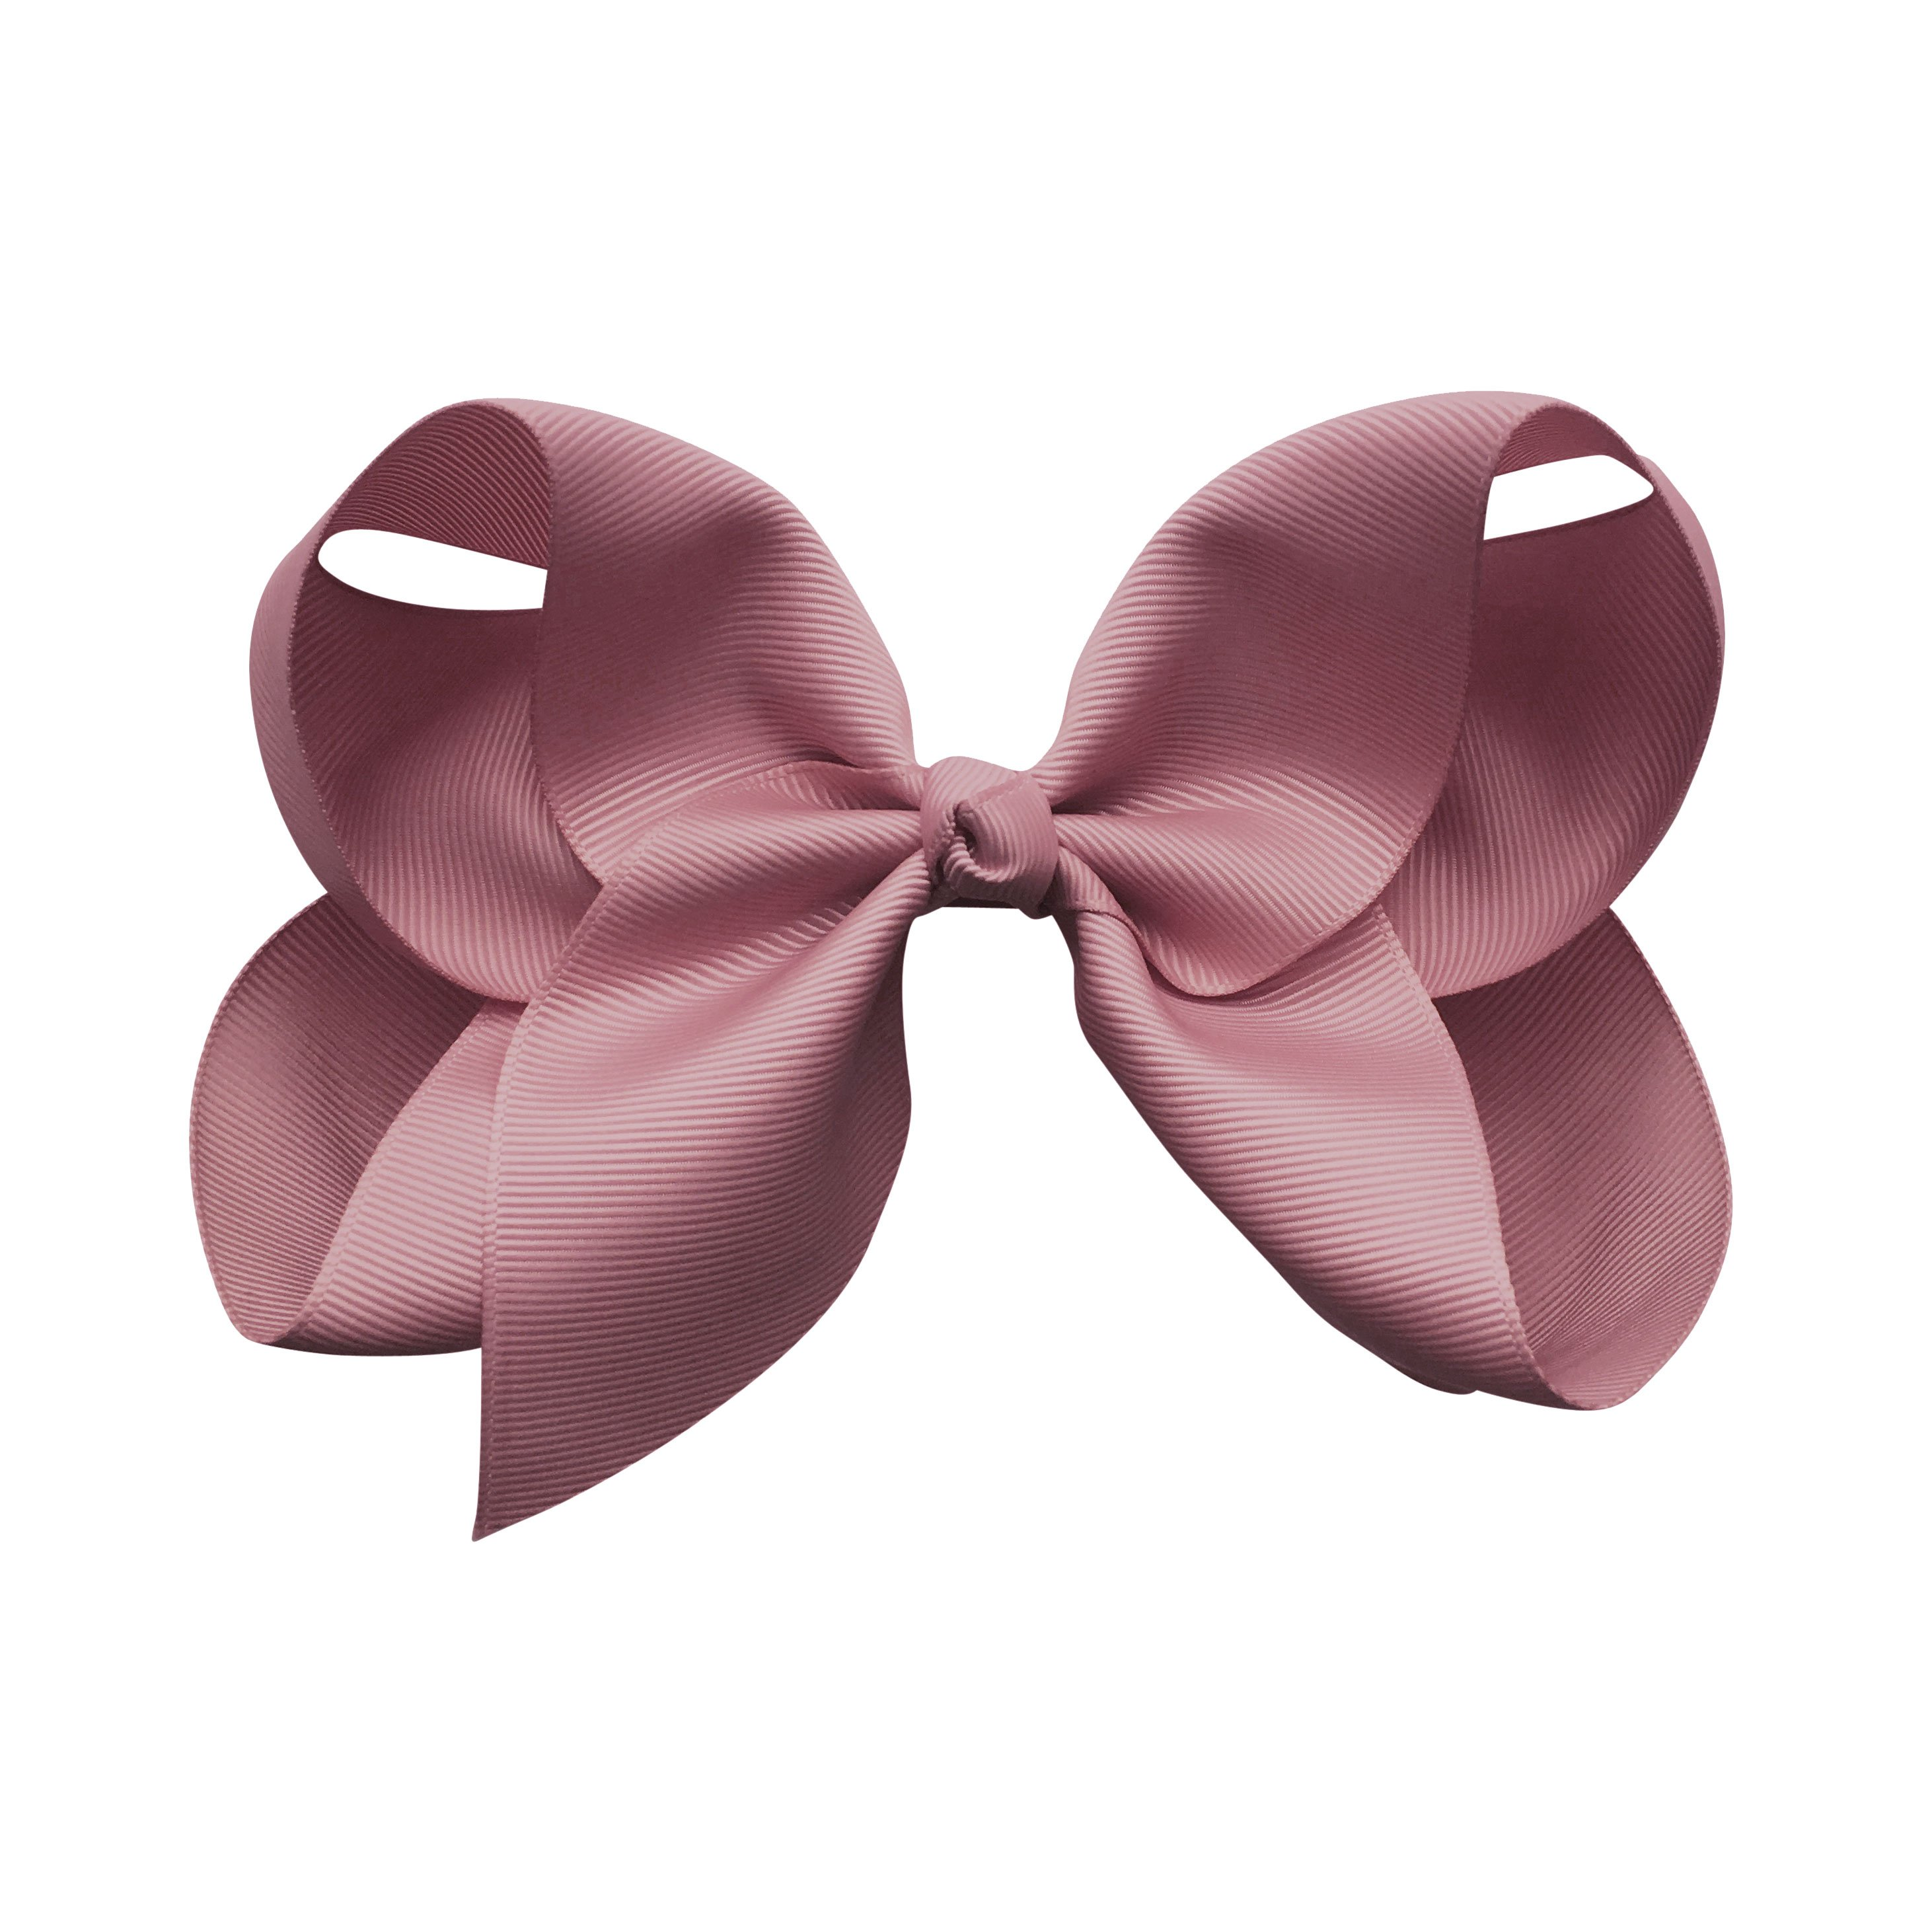 Image of Jumbo Boutique Bow - alligator clip - rosy mauve